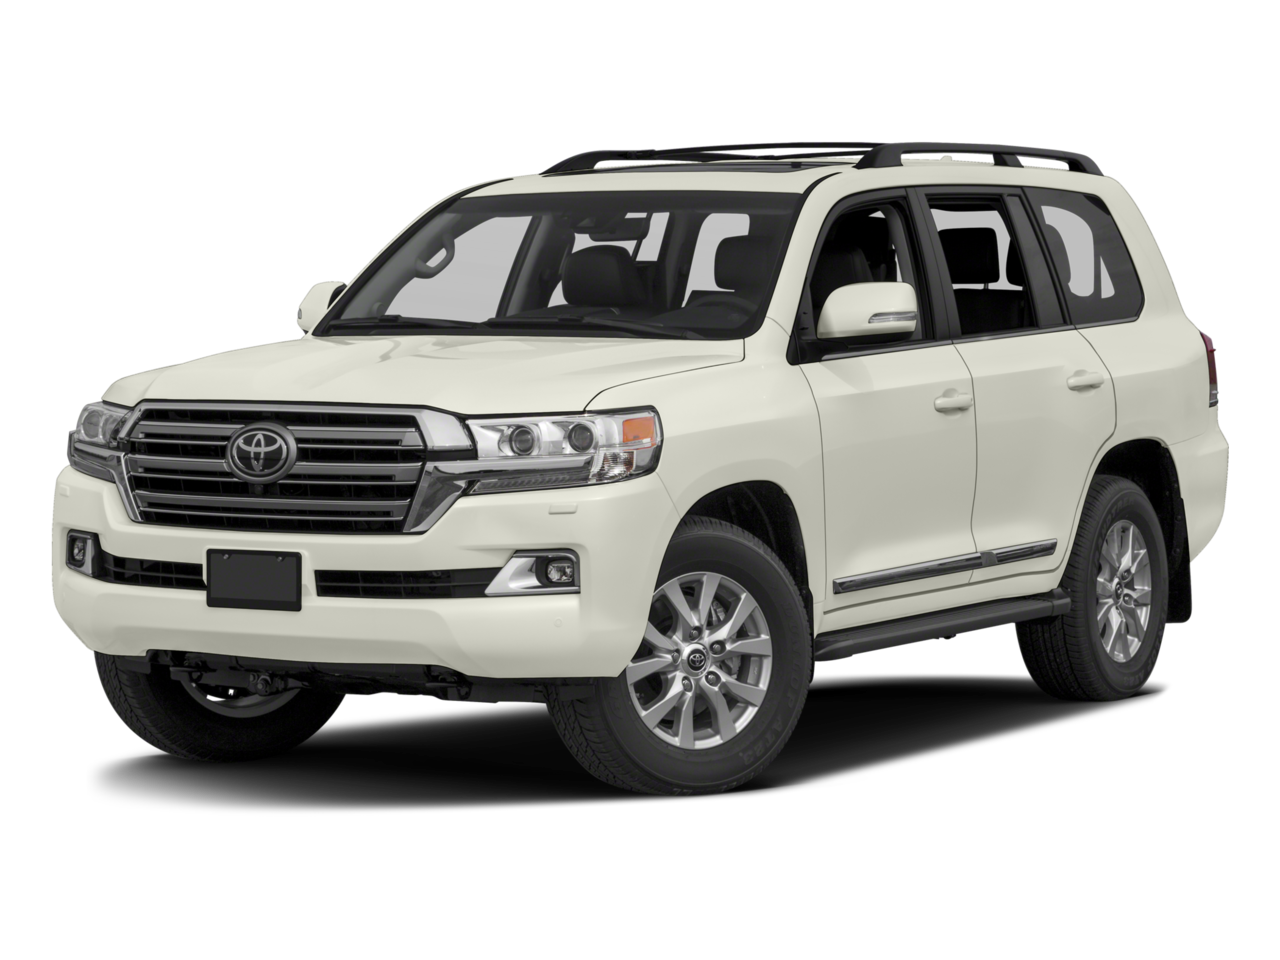 2016 Toyota Land Cruiser Near Allentown Pa